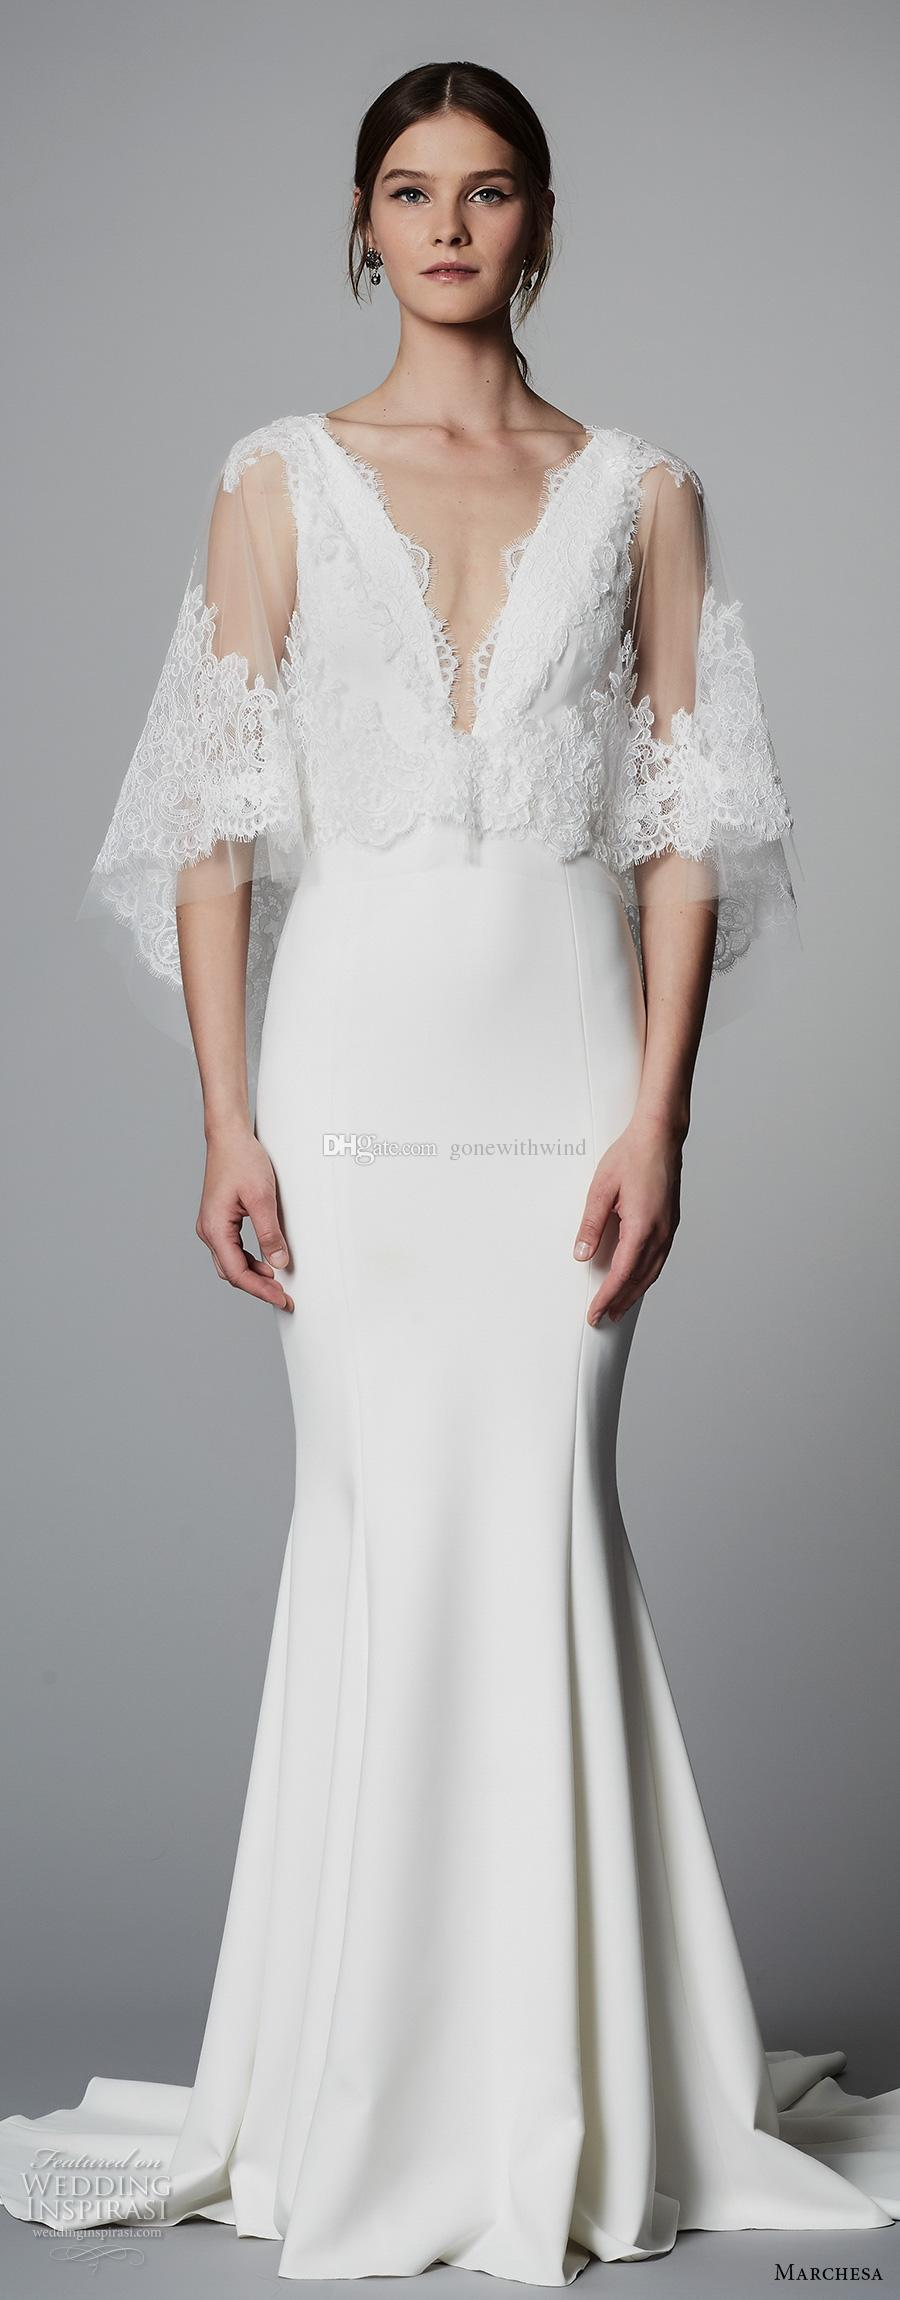 Elegant Fit And Flare Half Bell Sleeves Wedding Dresses 2018 Marchesa Bridal Deep V Neck Heavily Embellished Bodice Sweep Train Gowns With